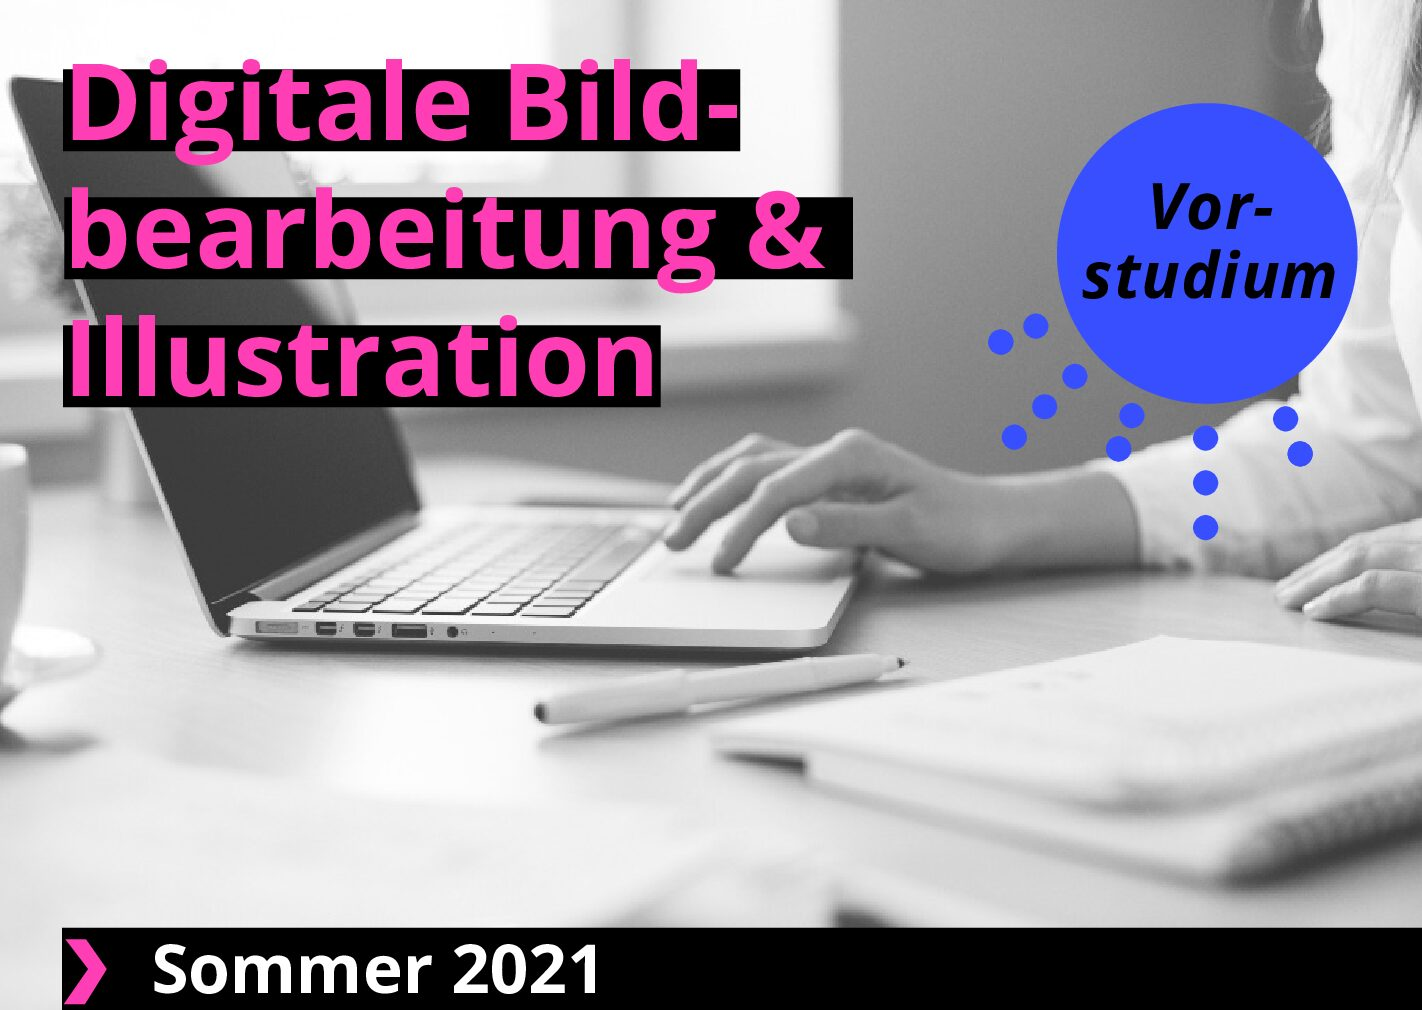 Digitale Bildbearbeitung & Illustration